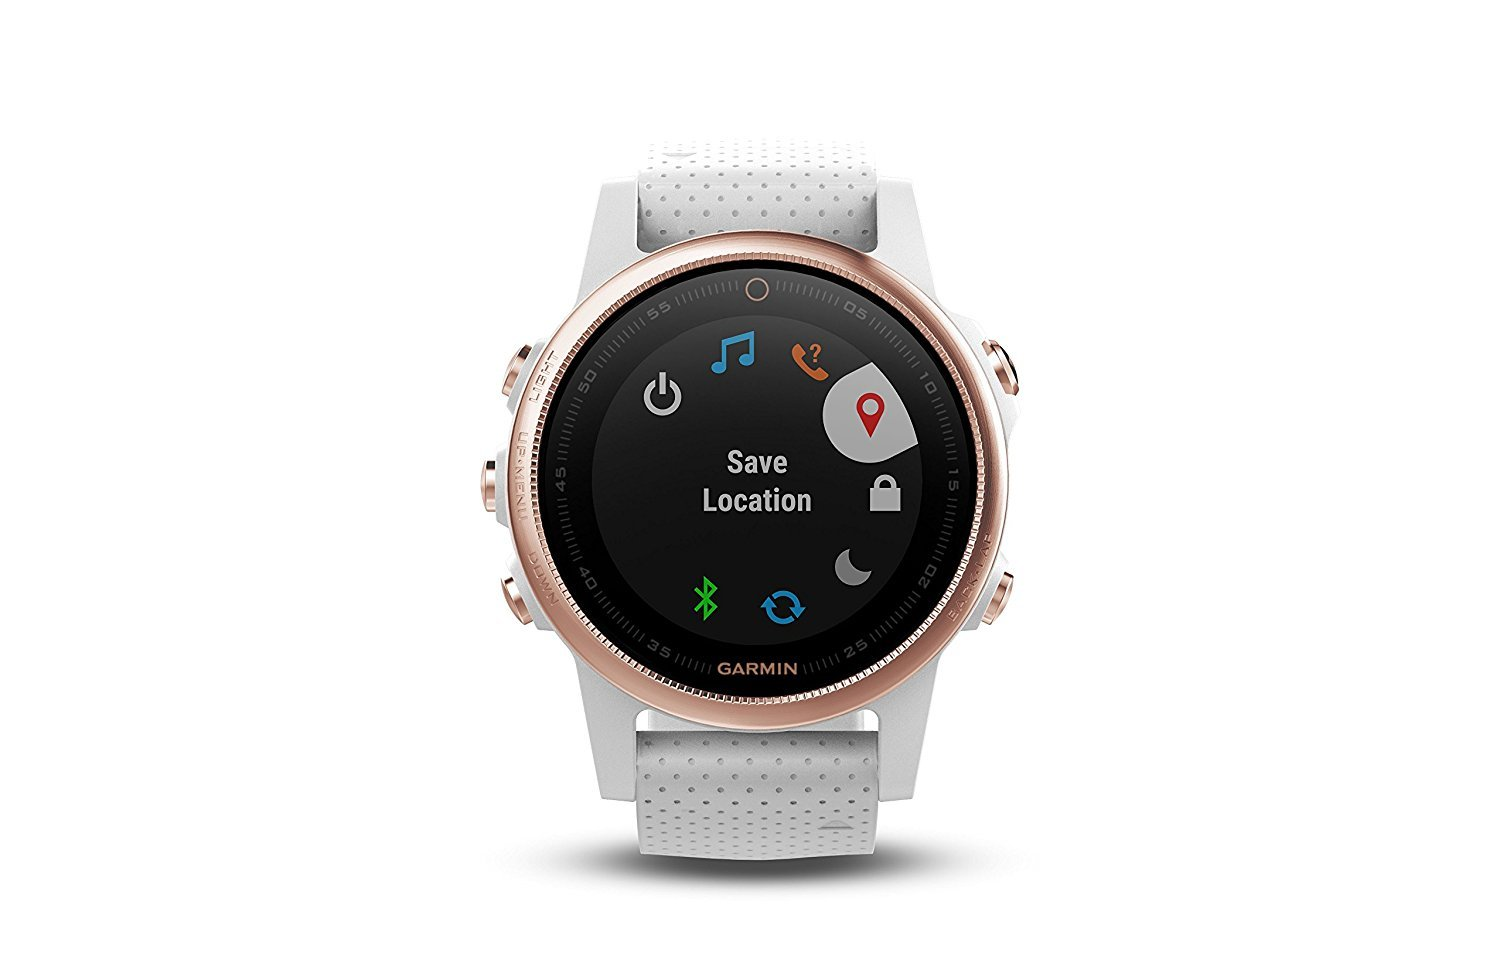 Garmin Fenix 5S - Sapphire, (Rose Gold/White Band) Bundle with PowerBank + USB Car Charger + USB Wall Charger (4 Items) by E Zee Electronics (Image #2)